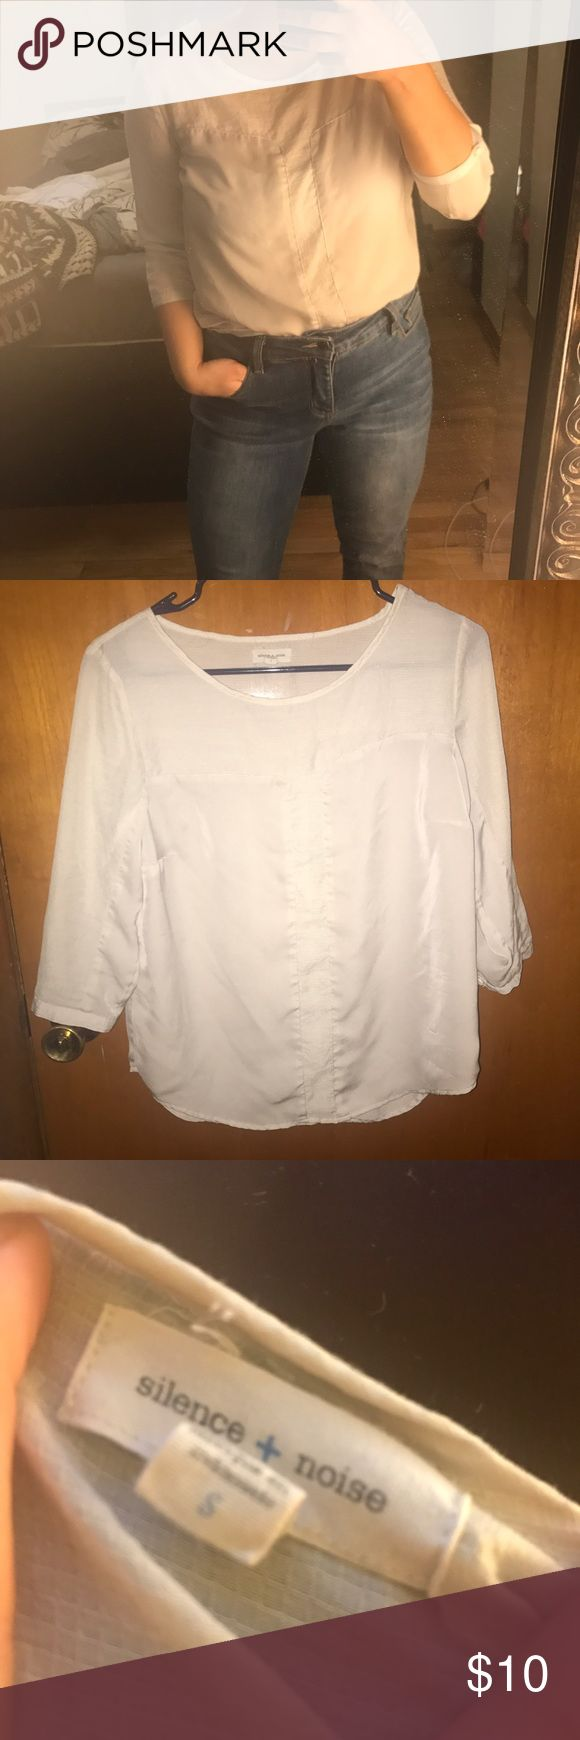 Urban outfitters small top Looks great with jeans or can dress up for business professional Urban Outfitters Tops Blouses